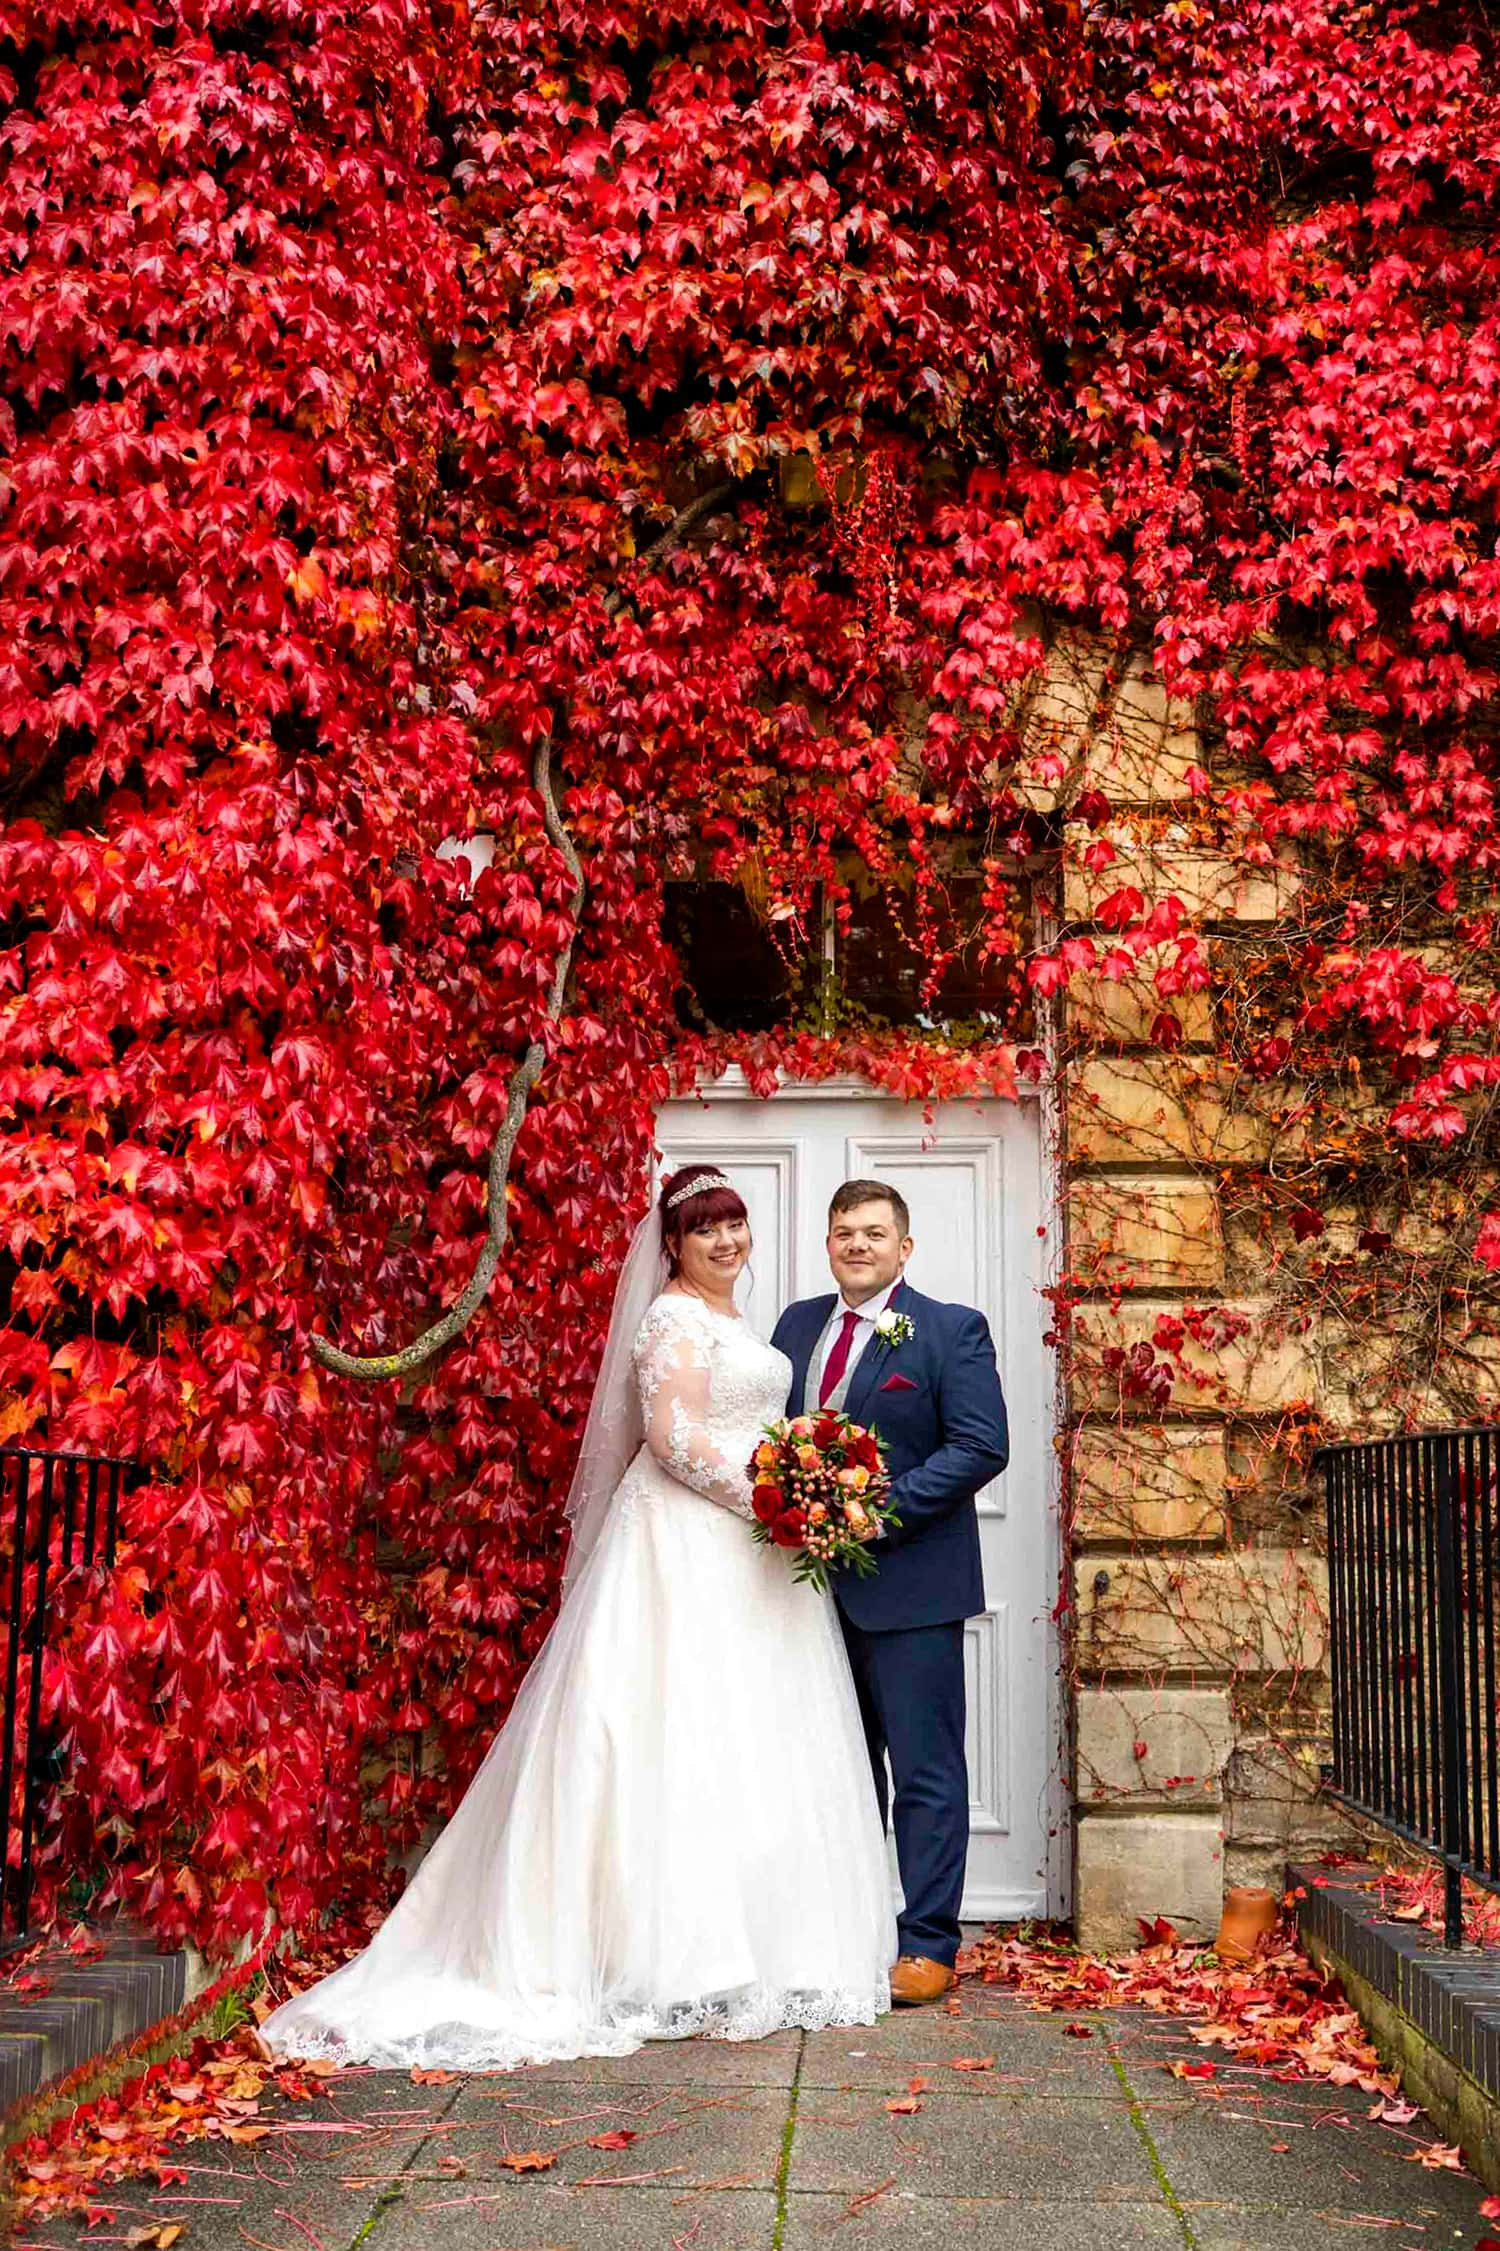 autunm colours at beaumont estate with a bride and groom on their wedding day